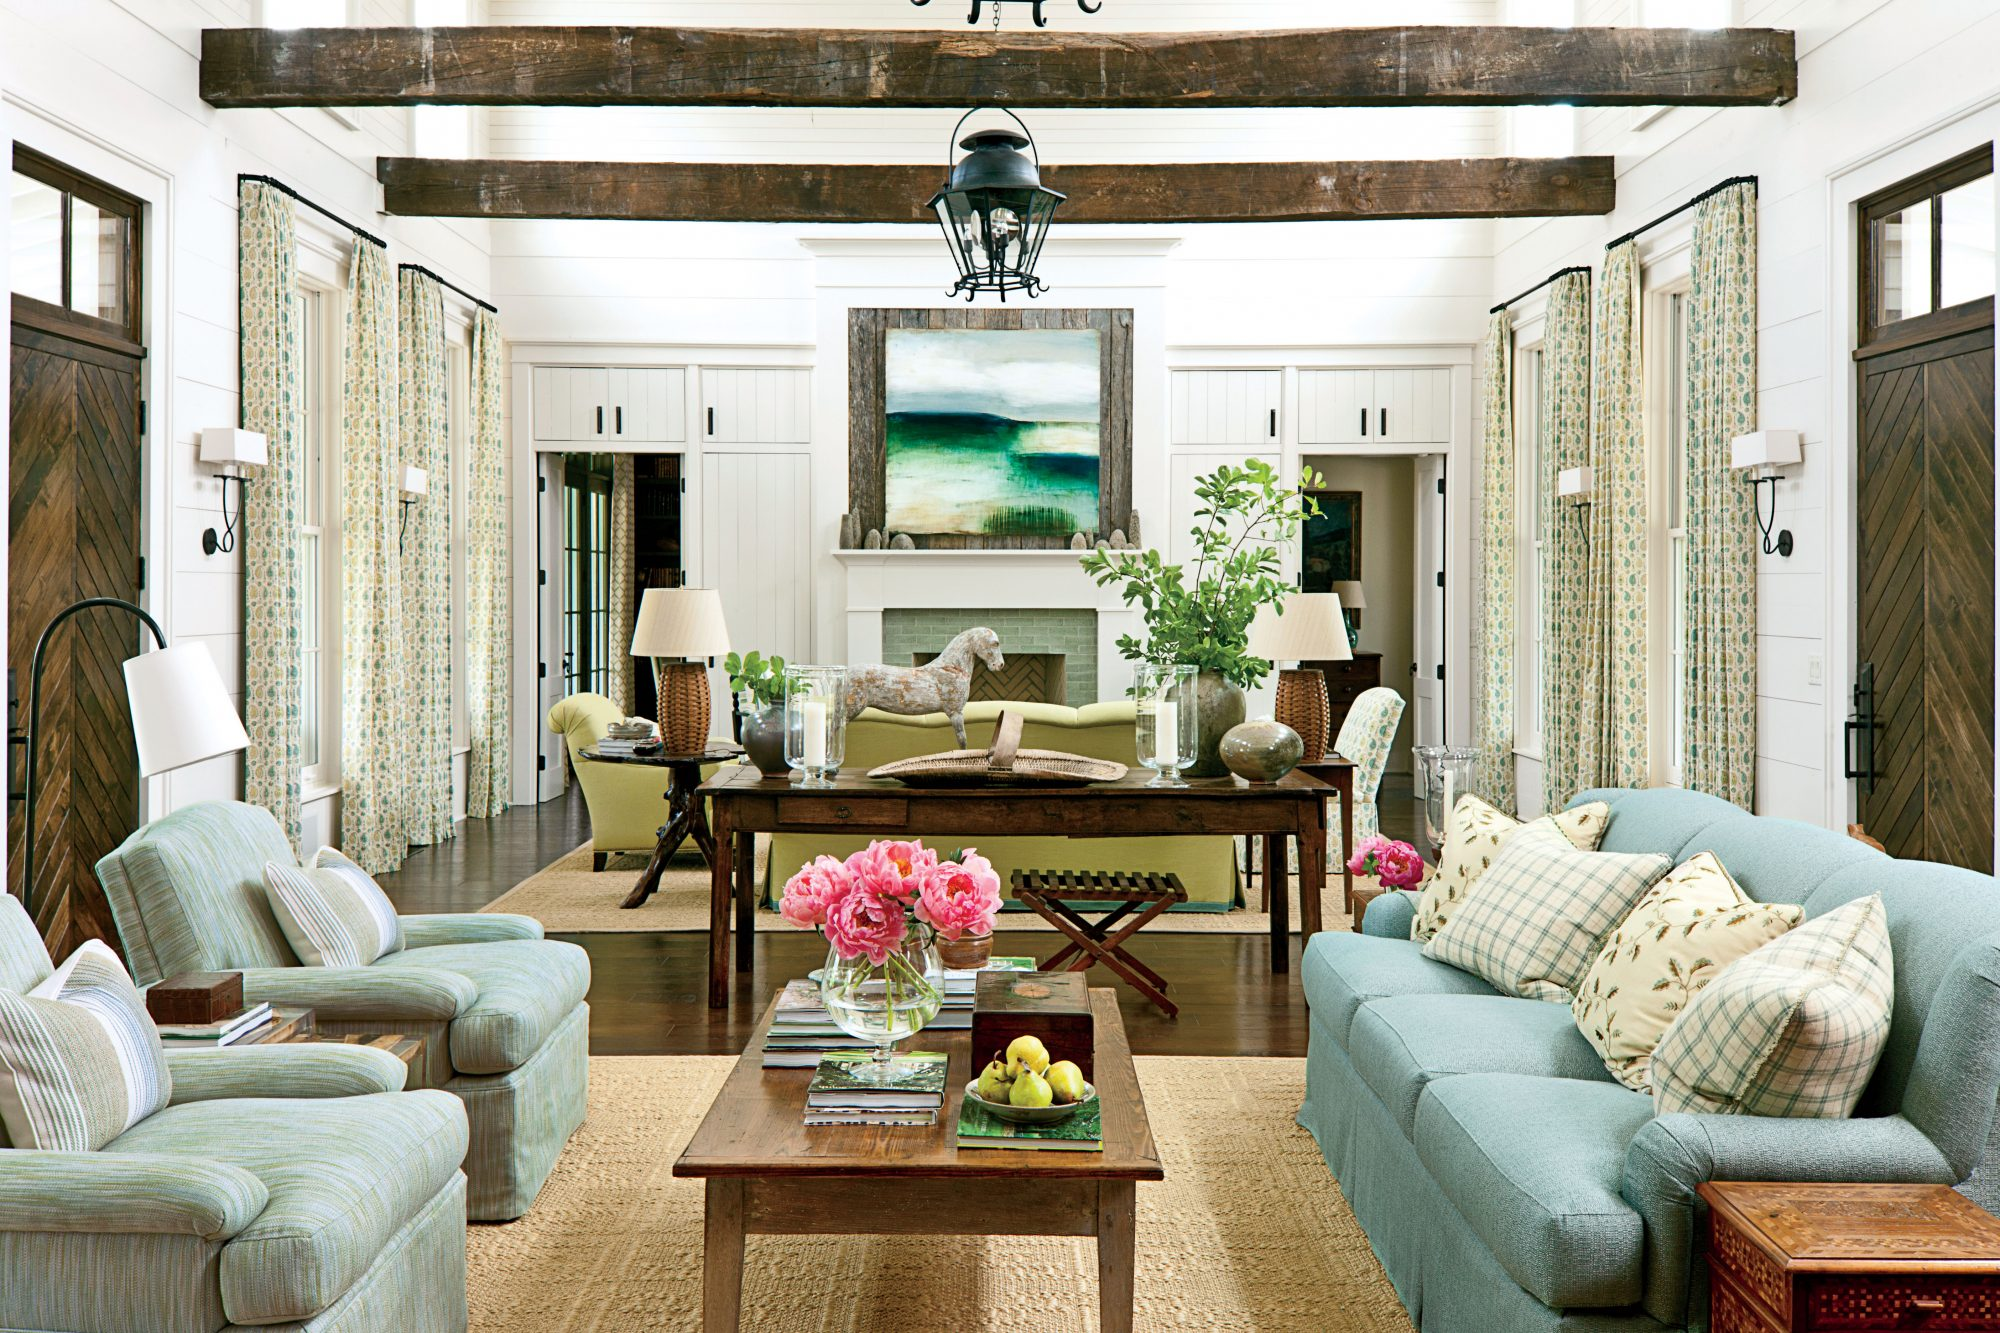 balance rustic elements - Photos Of Interior Design Living Room